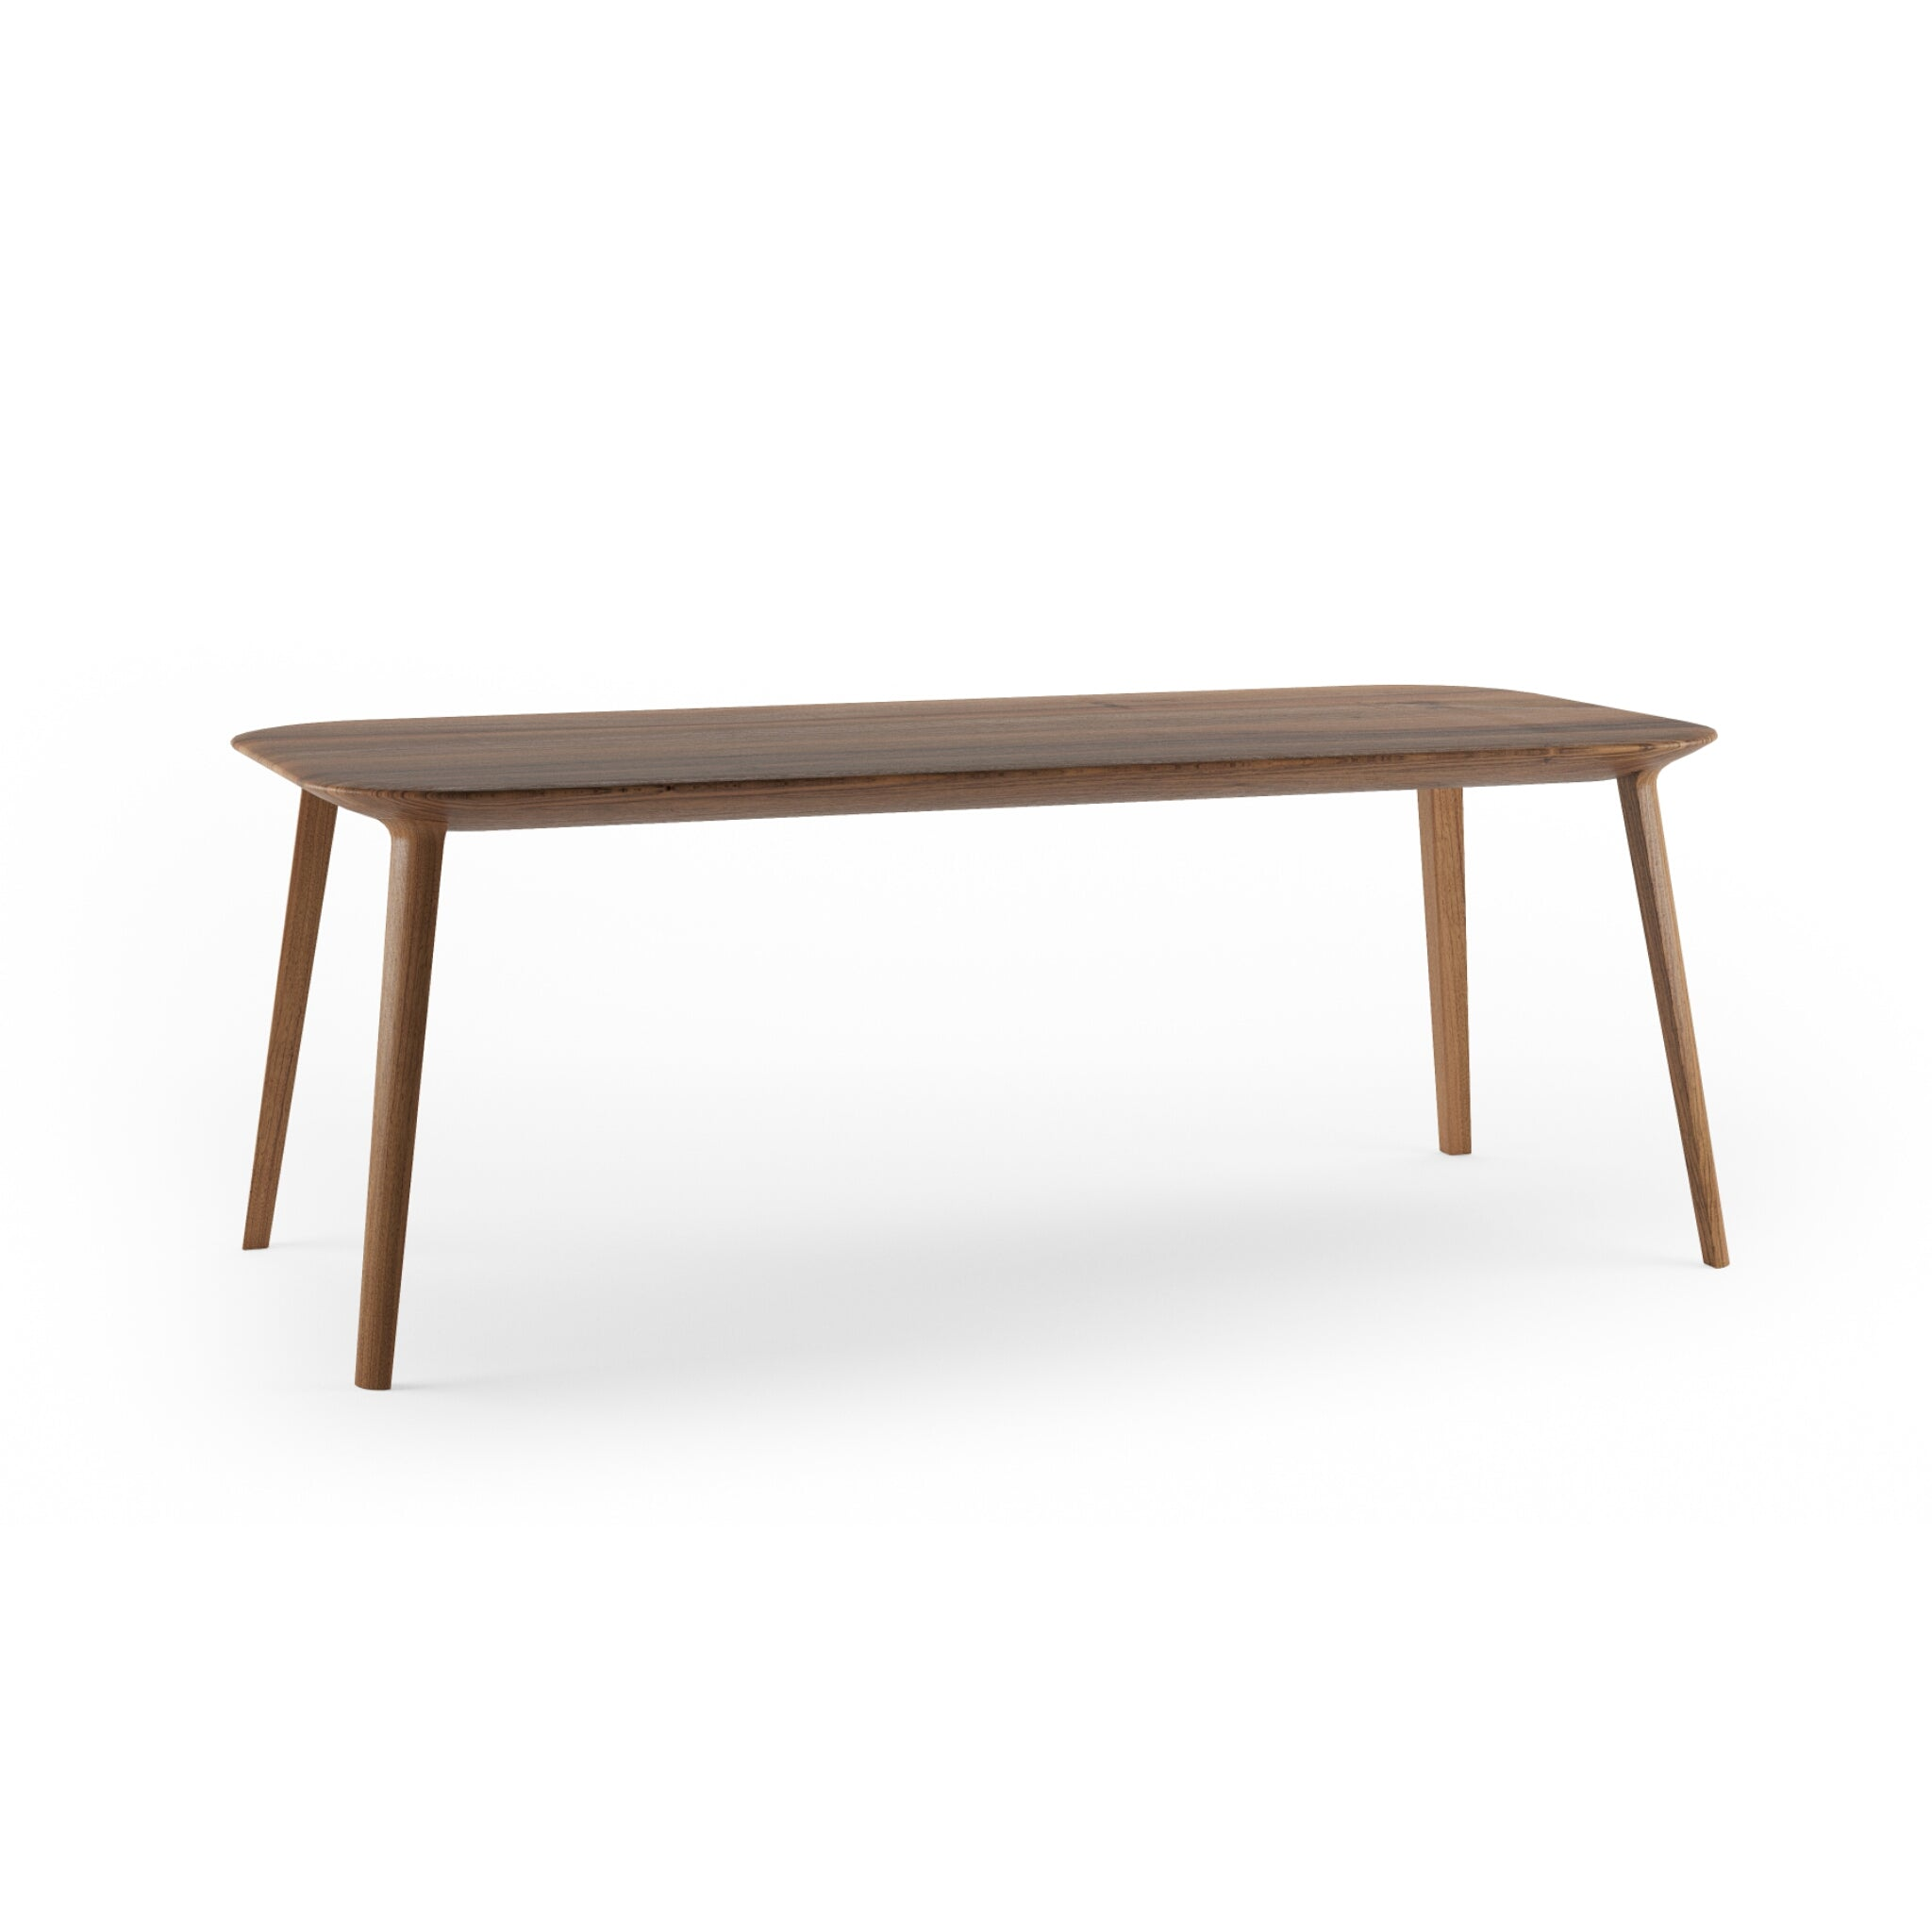 MITJA - KALOTA TABLE SOLID - Dining Table